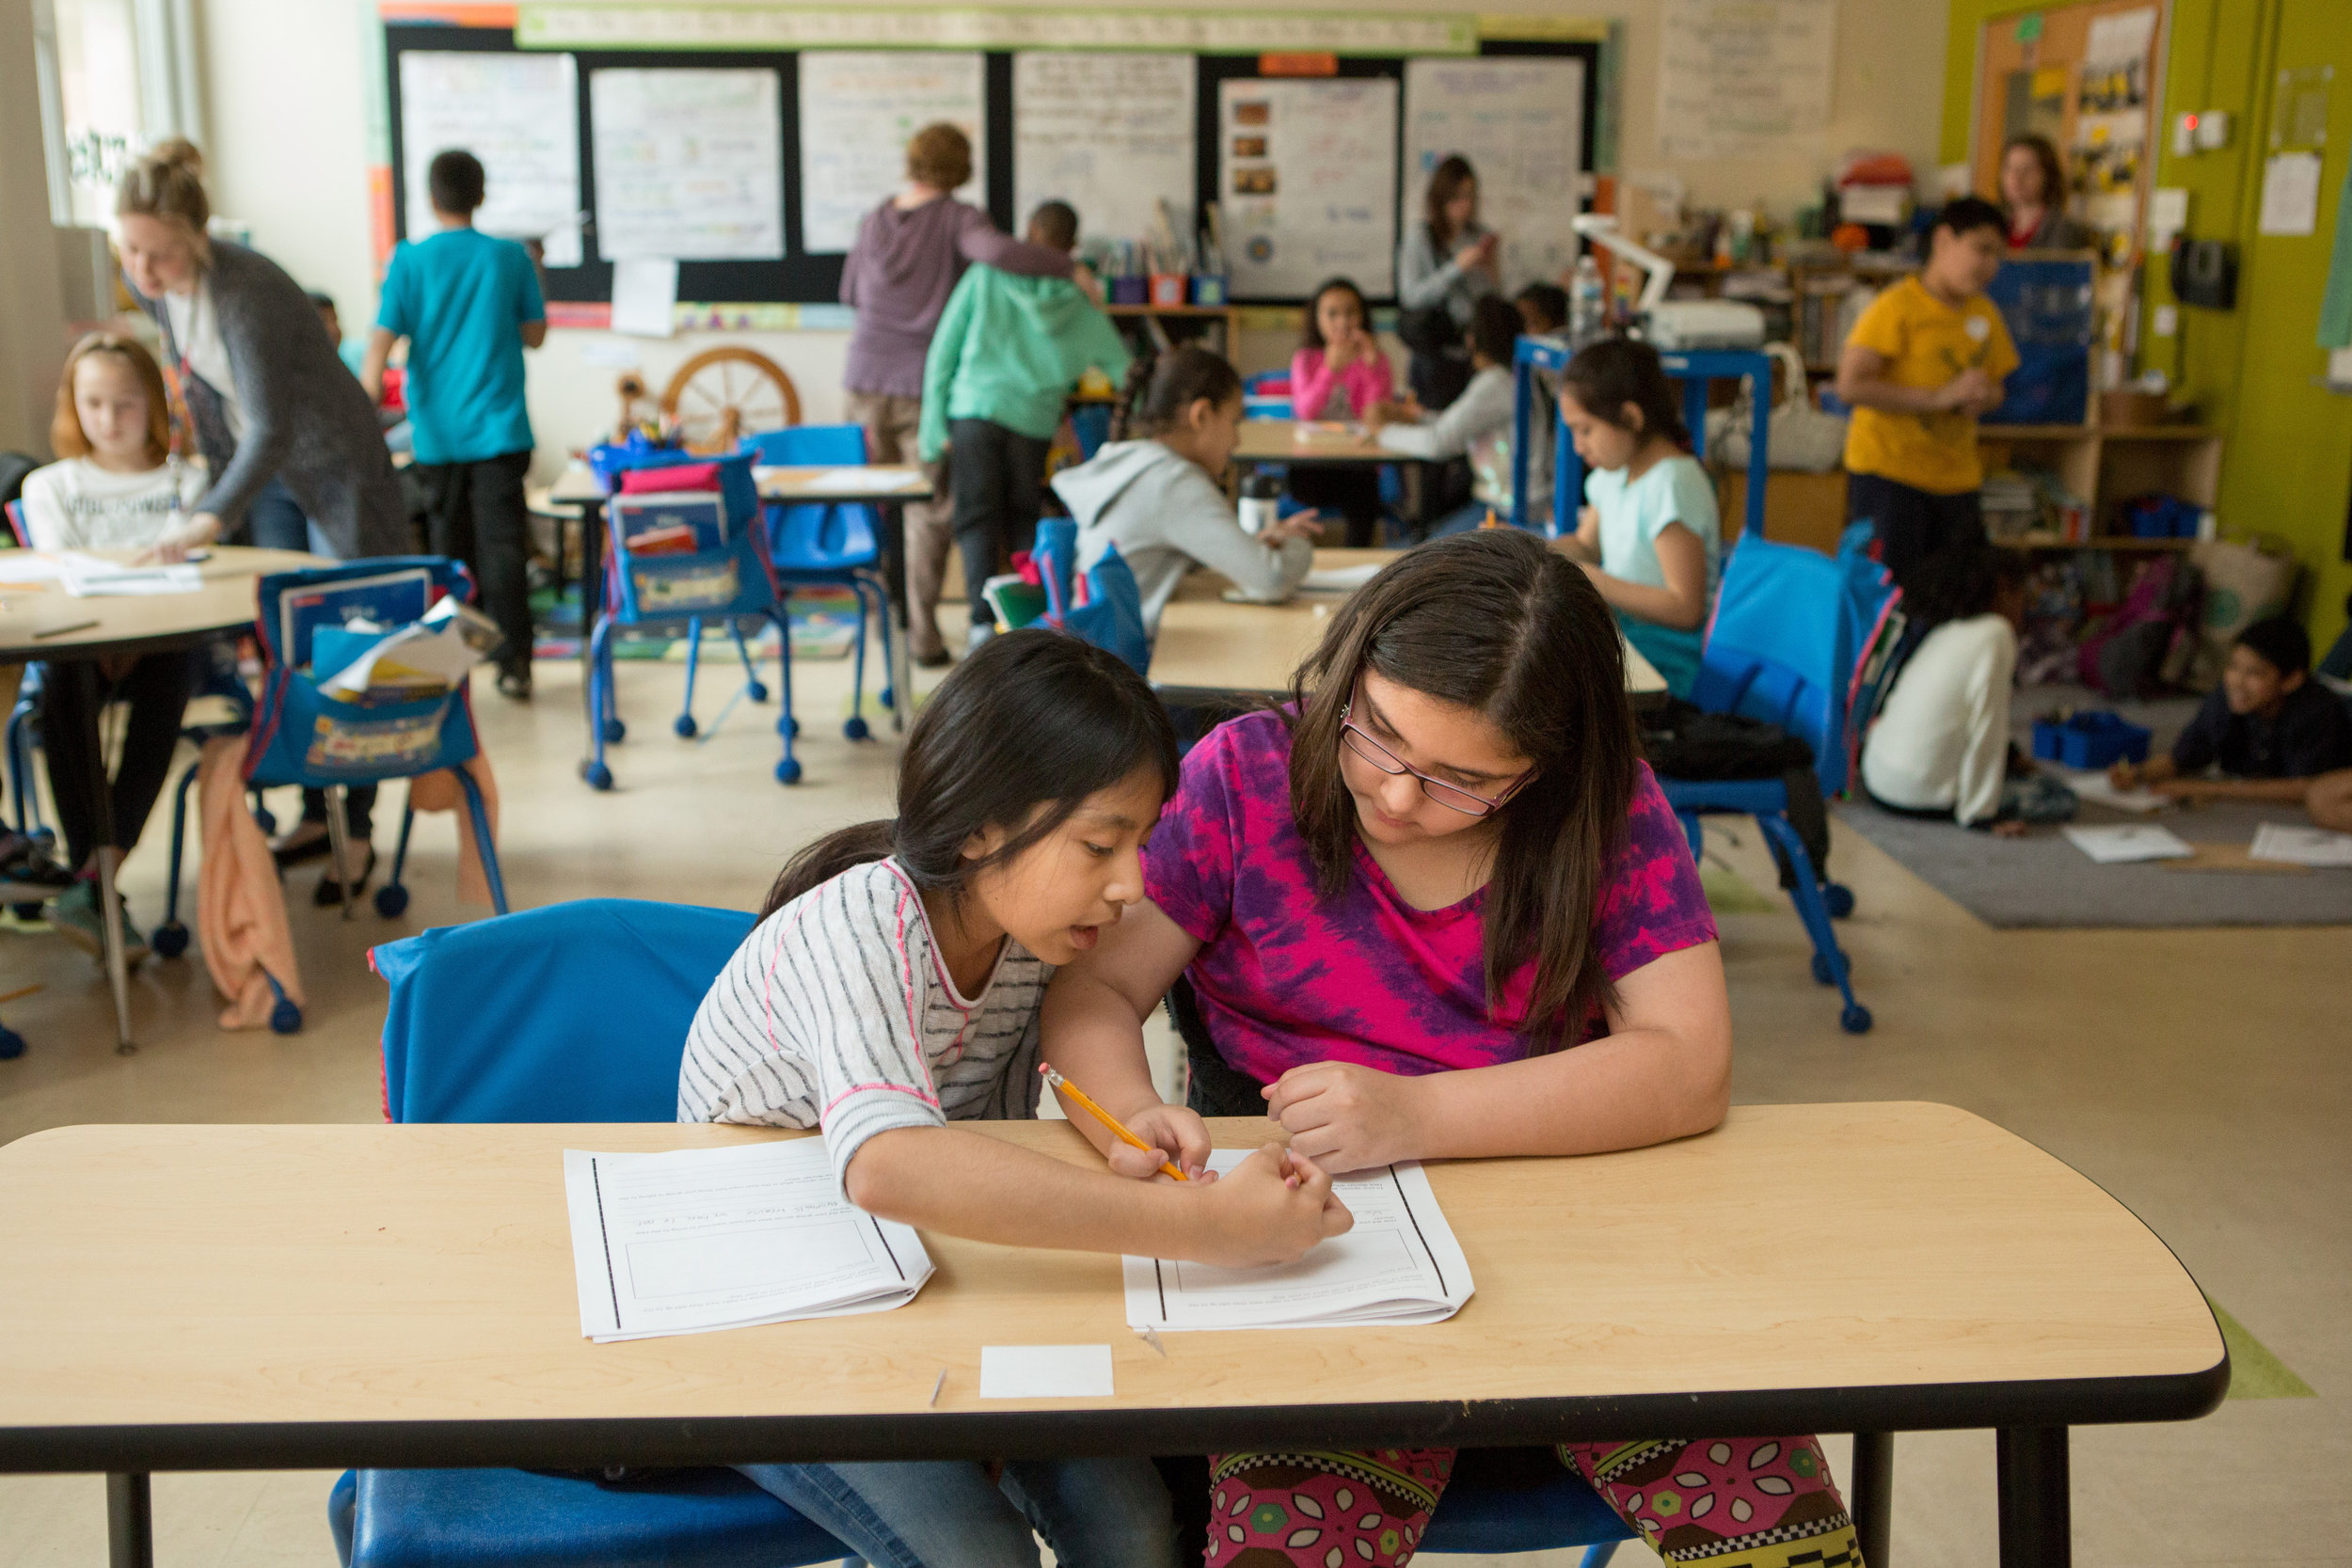 Courtesy of Allison Shelley/The Verbatim Agency for American Education: Images of Teachers and Students in Action.